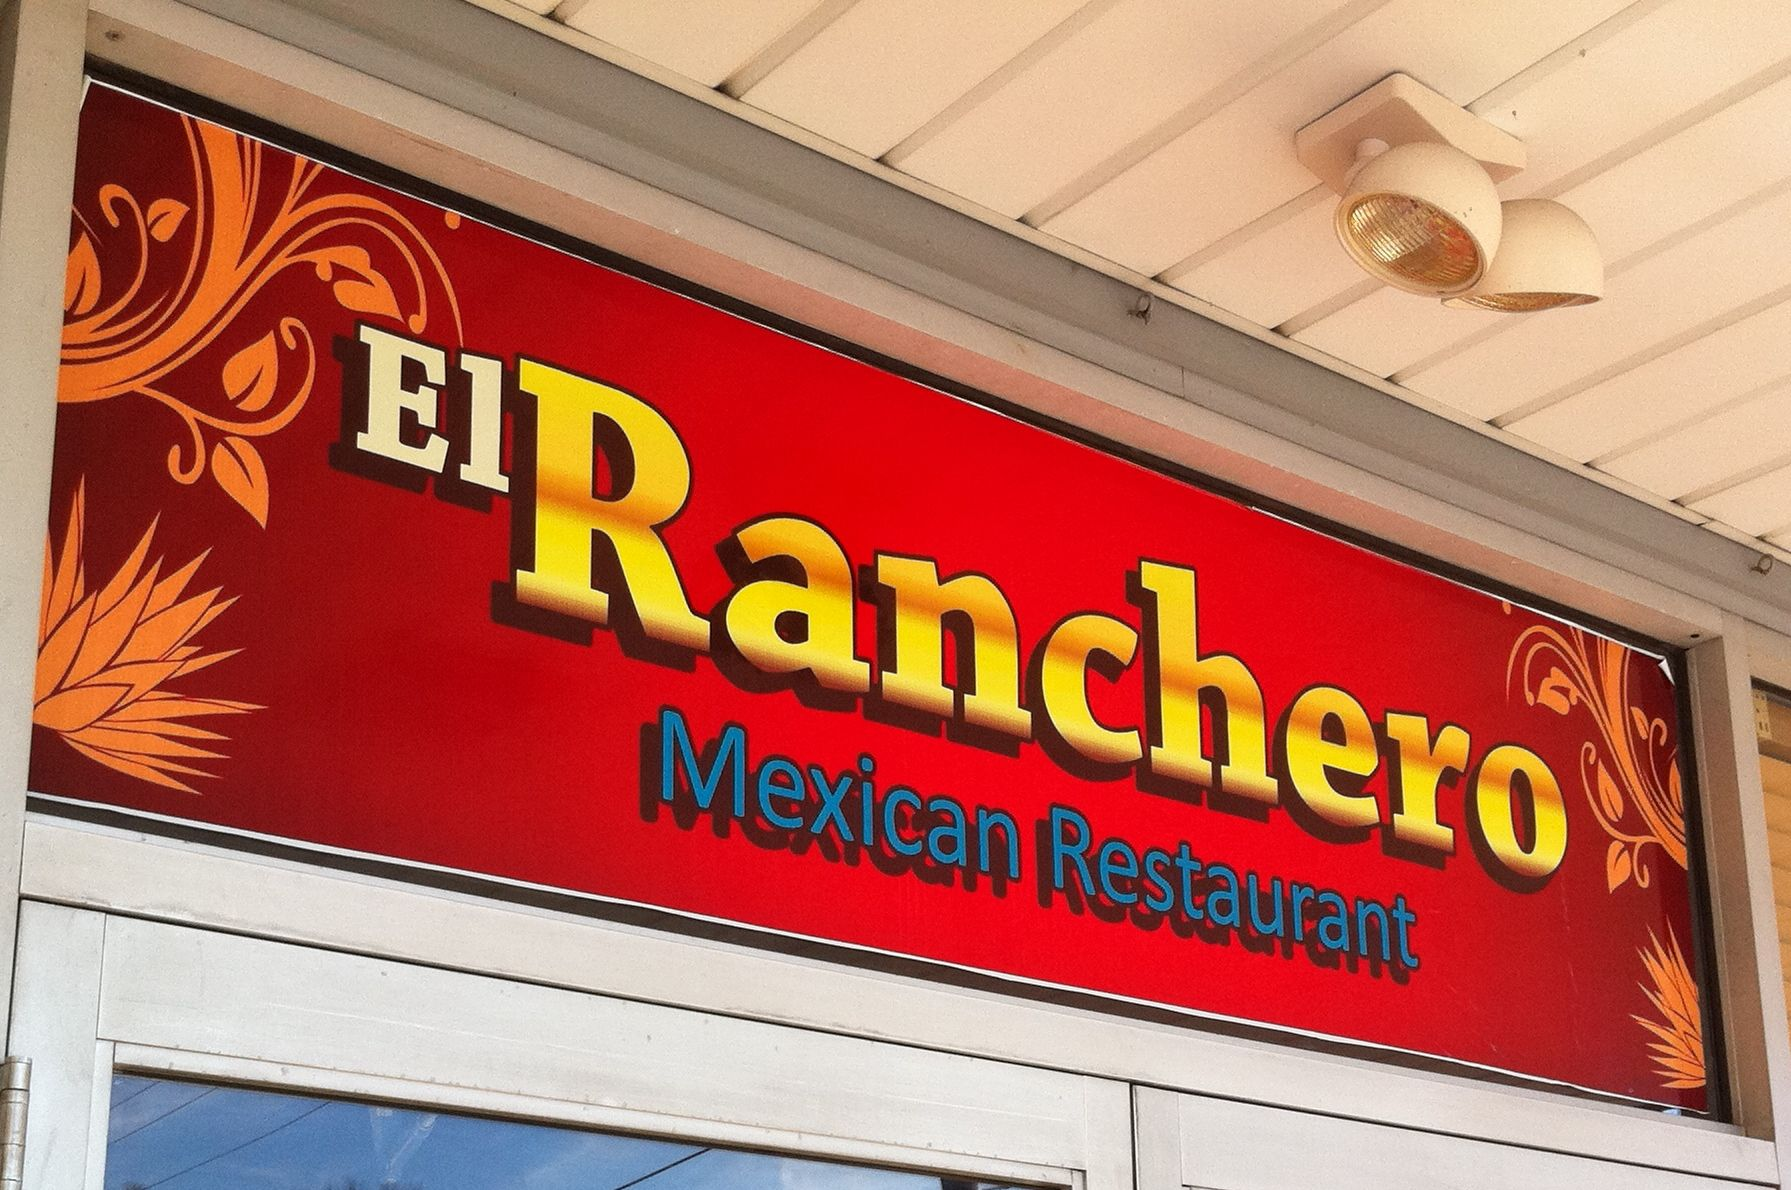 El Ranchero Mexican Restaurant Kennett Squaremexican Restaurants